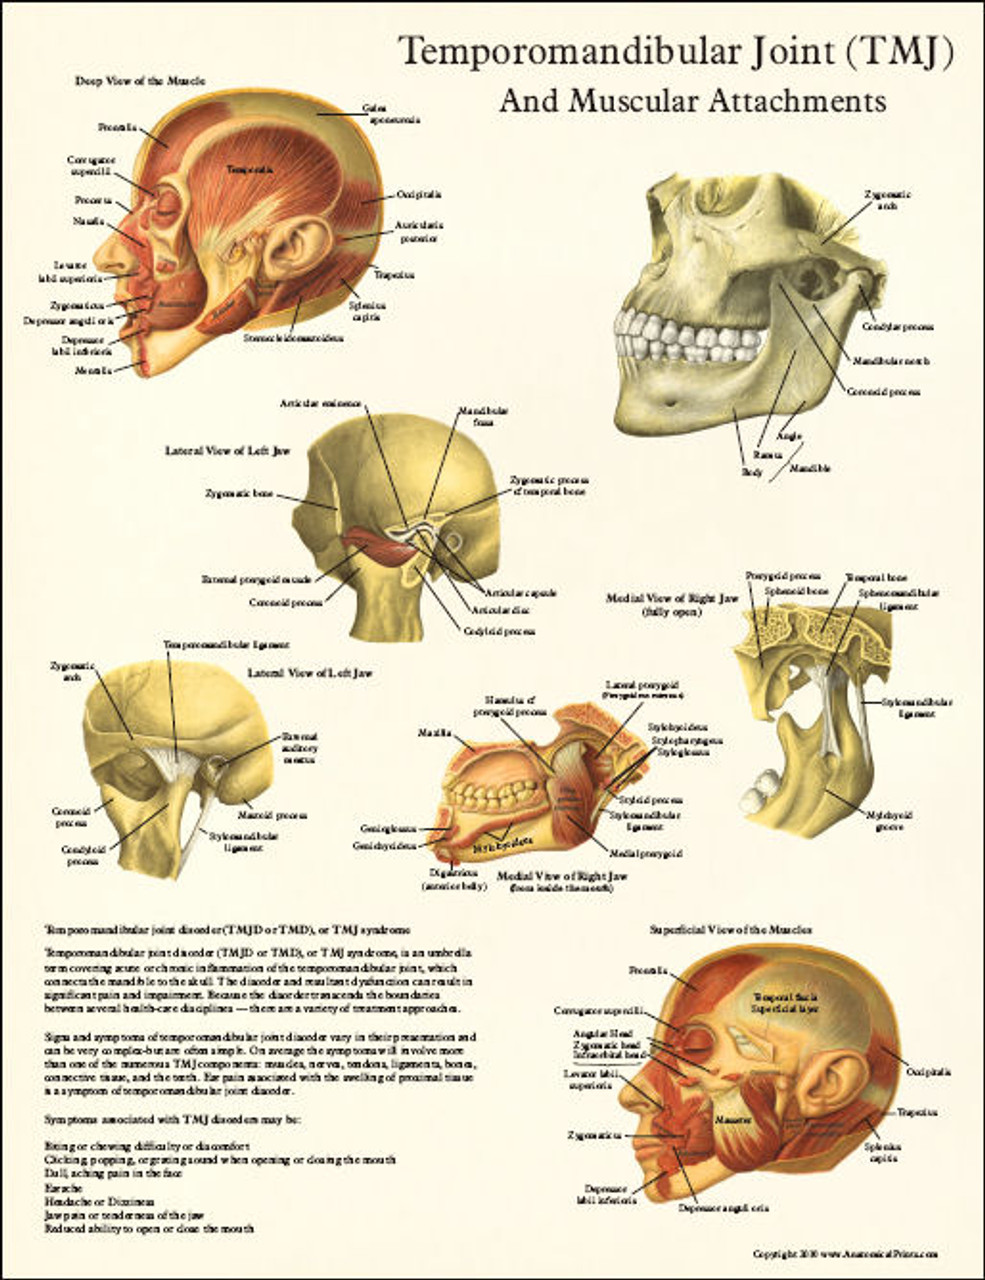 Tmj Anatomy And Muscular Attachments Poster Clinical Charts And